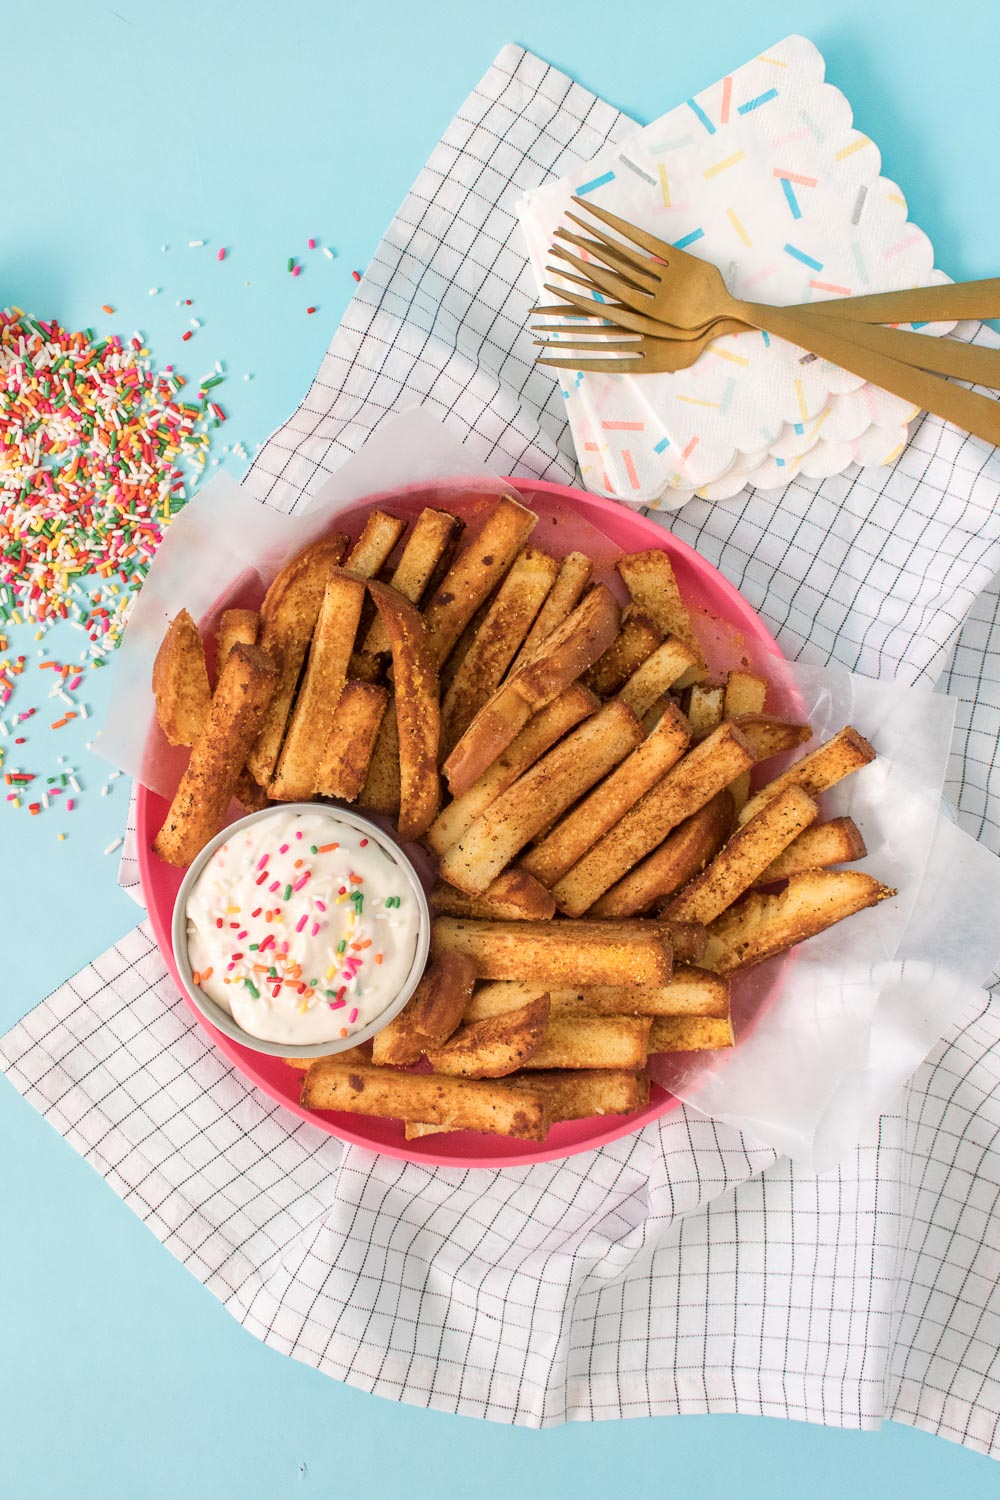 Cake Fries + Frosting Dipping Sauce | Club Crafted